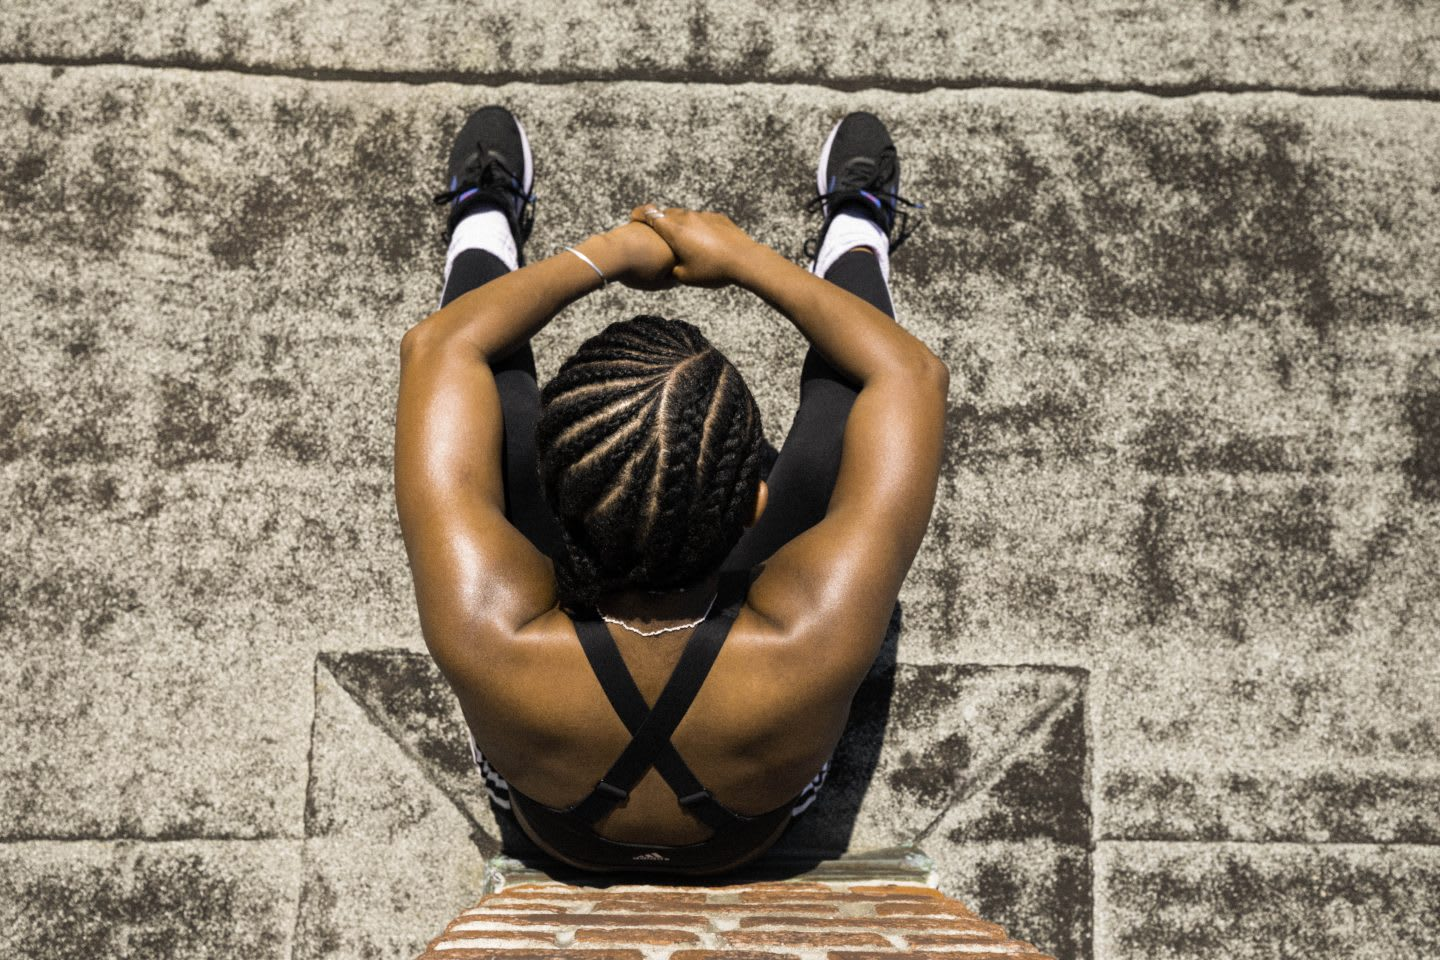 Woman wearing black sports bra, black running tights and black running shoes sitting with knees up against brick wall in the sun, athlete, rest, recovery, tired, adidas, sport, fitness